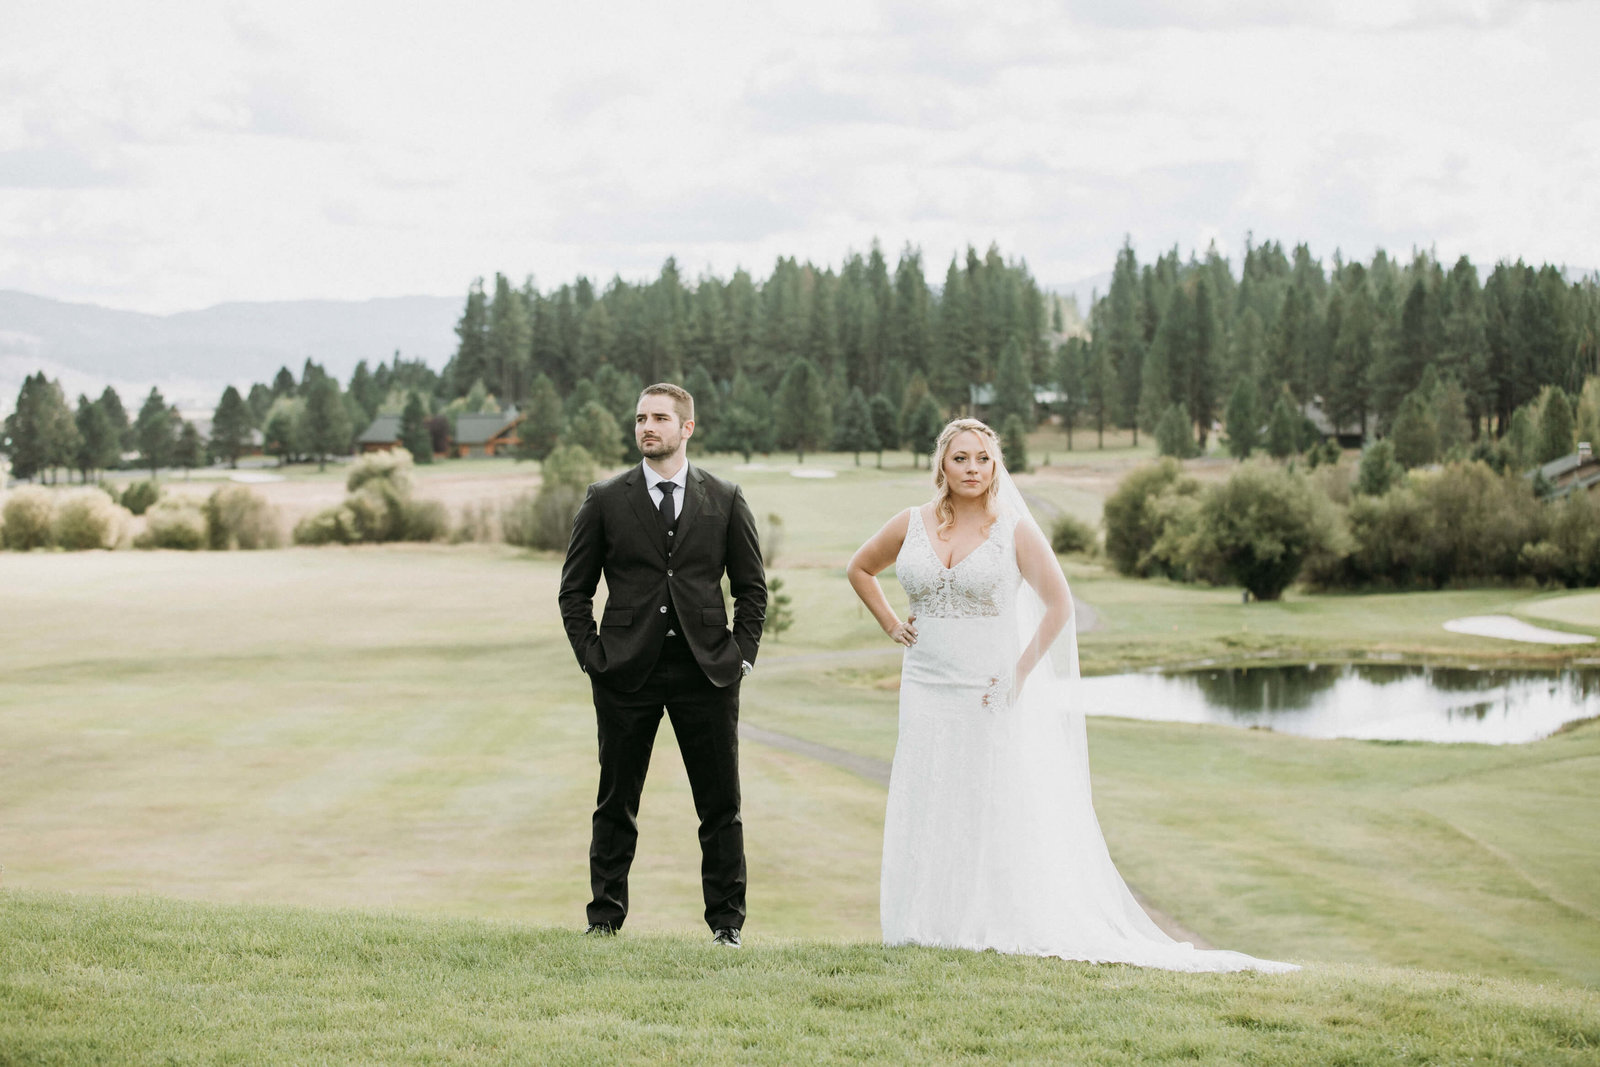 destination-wedding-idaho-seattle-wedding-photographer-adina-preston-photography-122